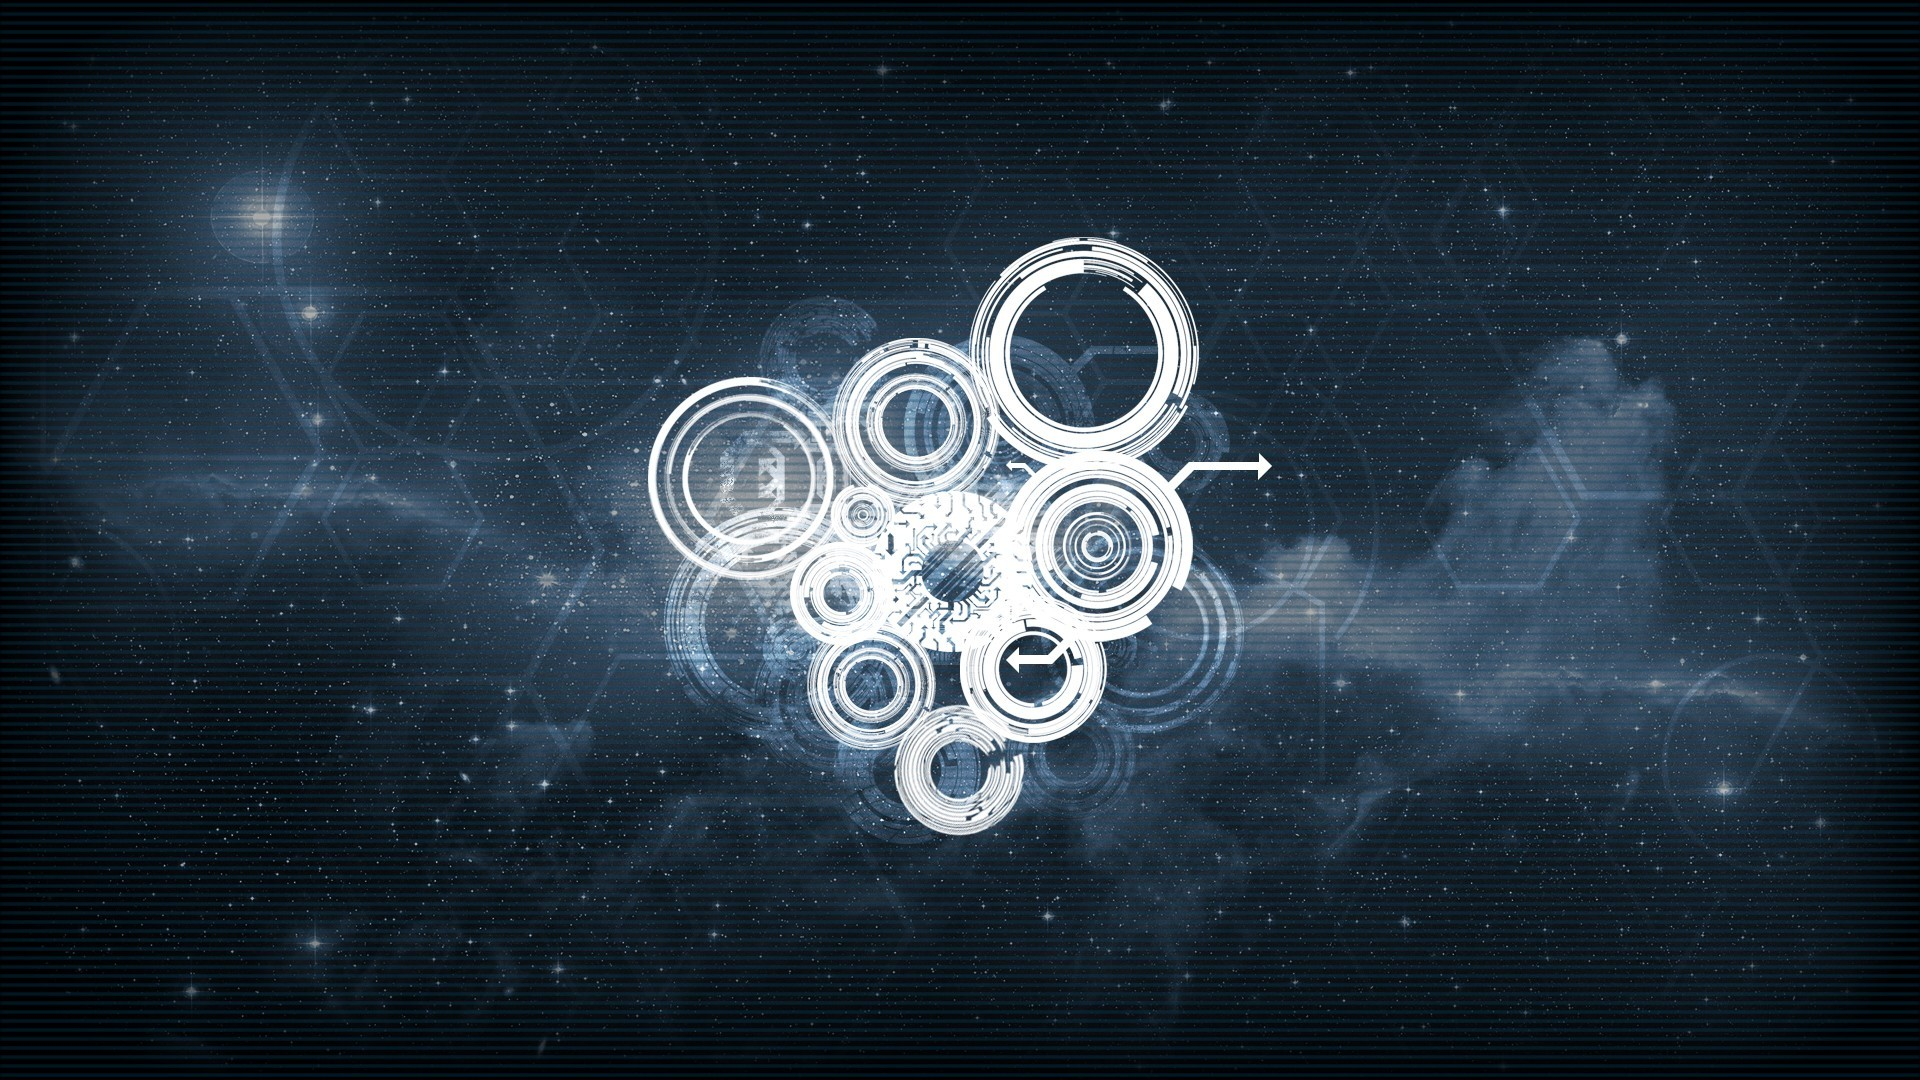 Sci Fi Abstract Wallpaper Picture | Abstract Wallpapers | Pinterest |  Wallpaper pictures, Sci fi and Wallpaper